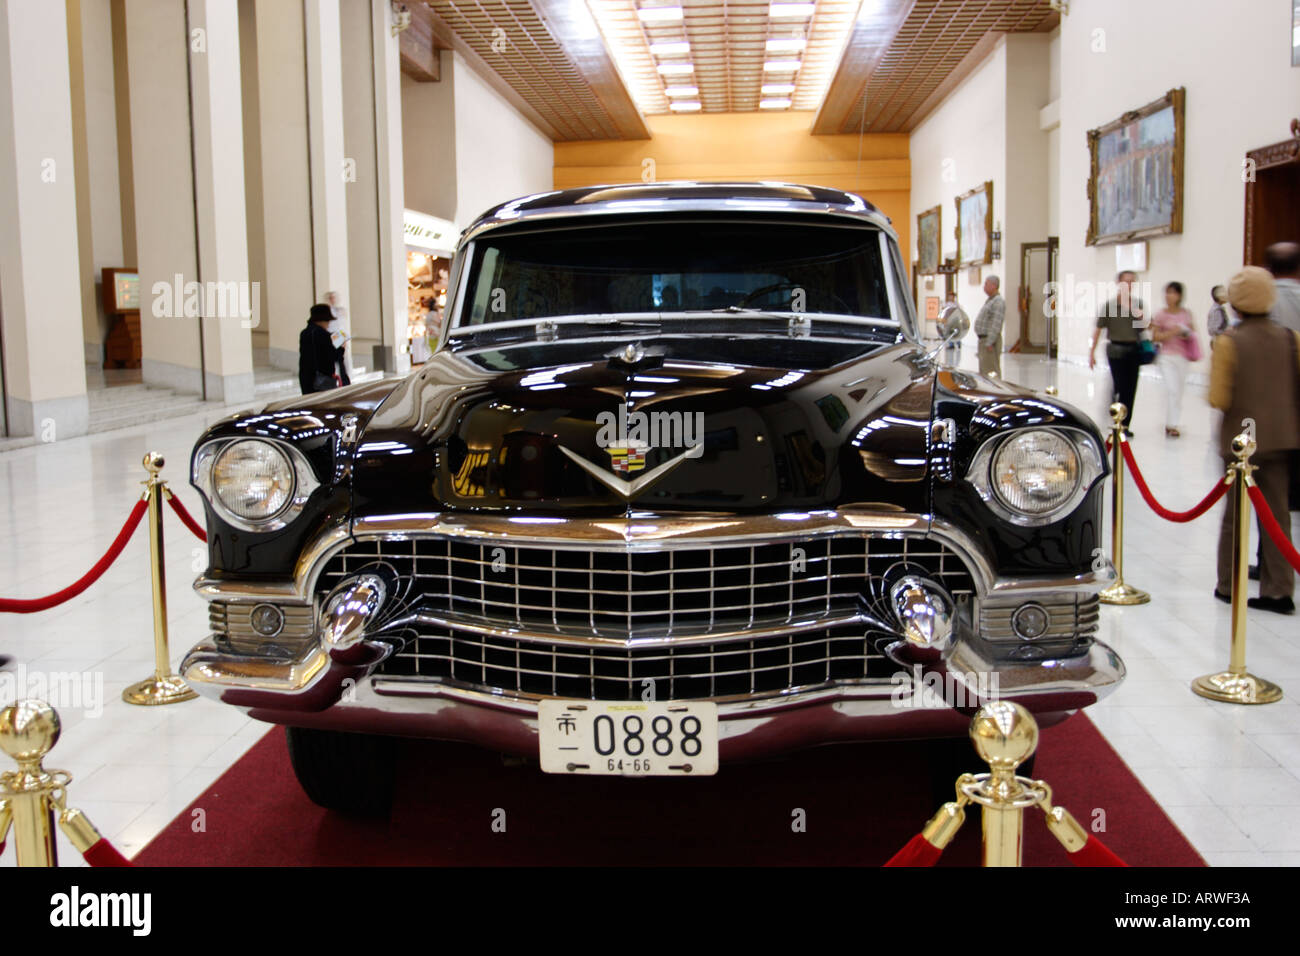 Bullet Proof Stock Photos Images Alamy Murdered Out 1955 Cadillac Late President Chiang Kai Sheks With Glass Shek Memorial Hall